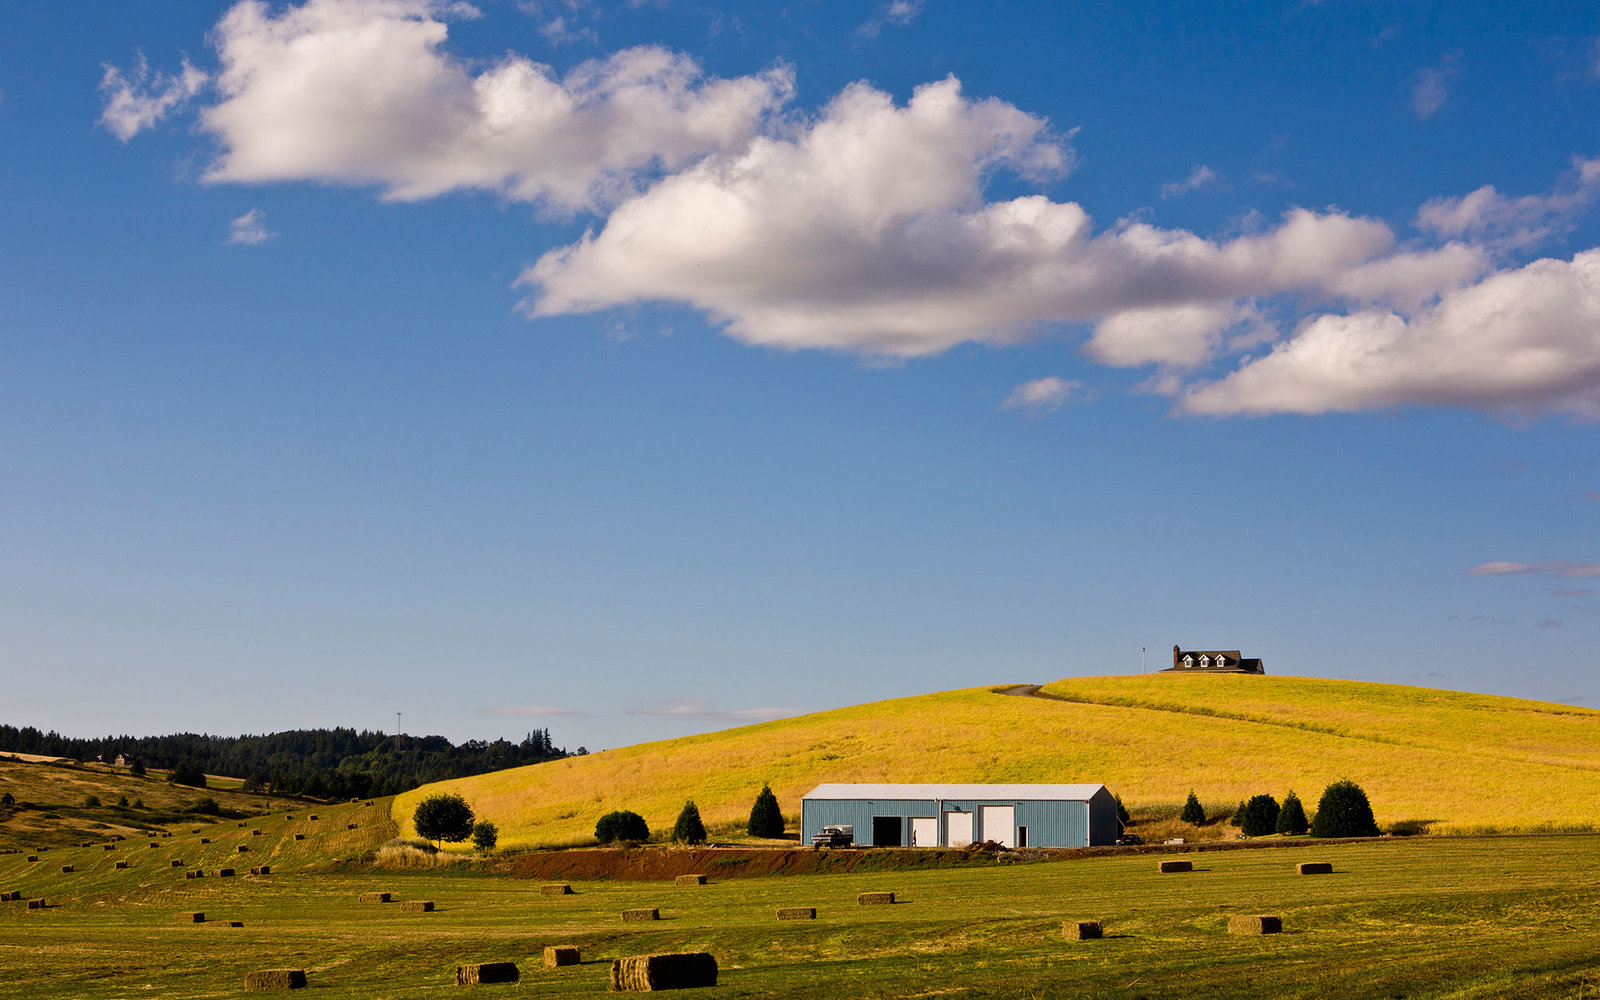 McMINNVILLE, OR - JULY 28:  A rural estate outside Newburg is viewed from the highway on July 28, 2012, near McMinnville, Oregon.  The cities of McMinnville and Newburg, located in the Willamette Valley wine appellation, are the epicenter of Oregon's wine